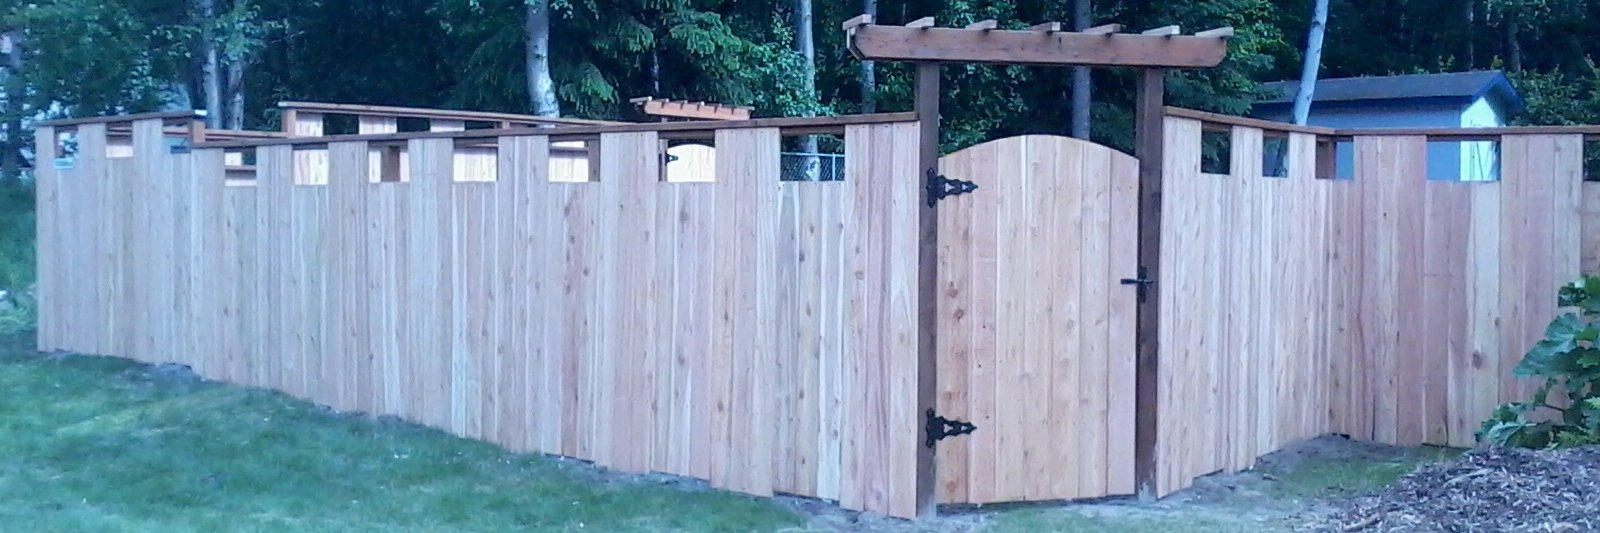 professional fence company ready to help you in Anchorage, AK